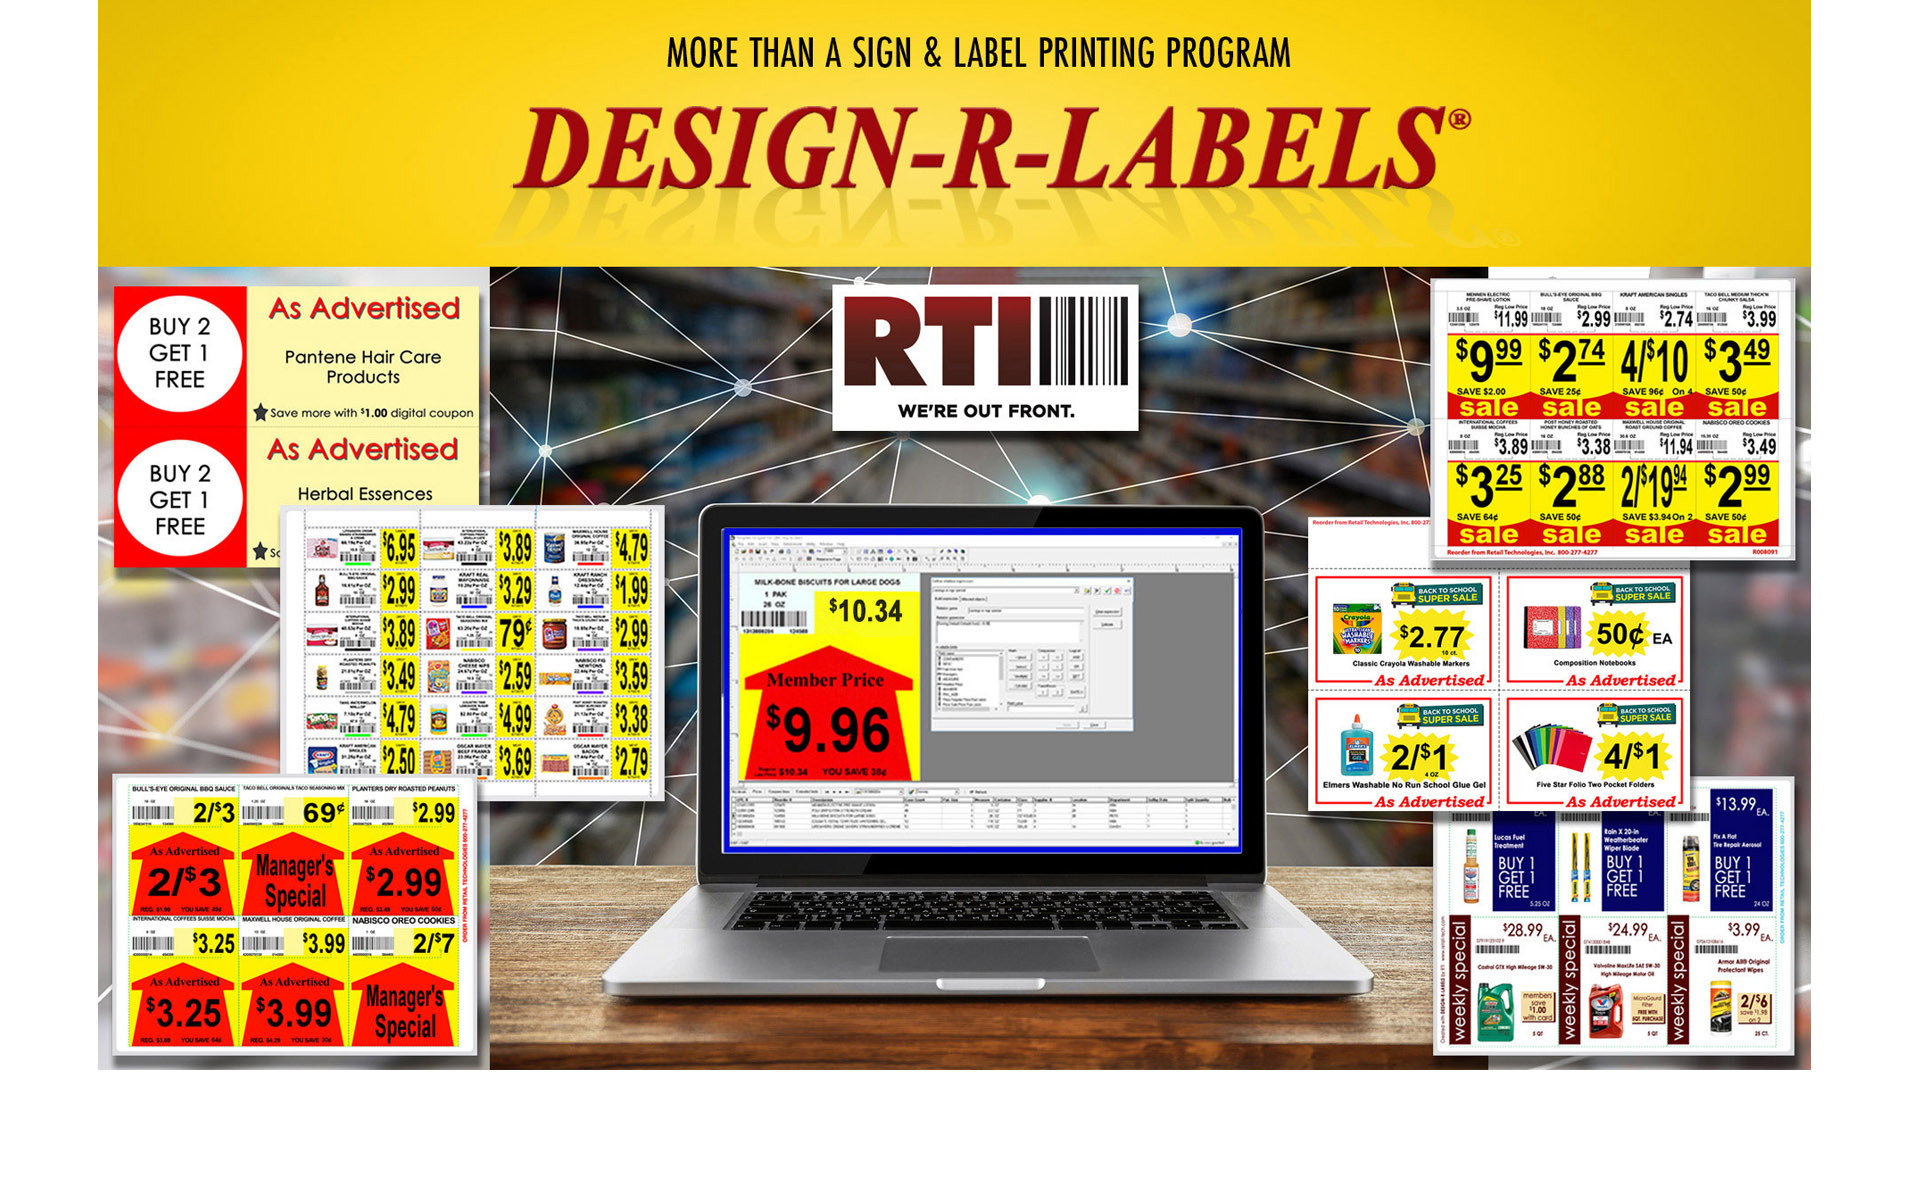 Signage Labels Shelf Talkers Printing Supplies